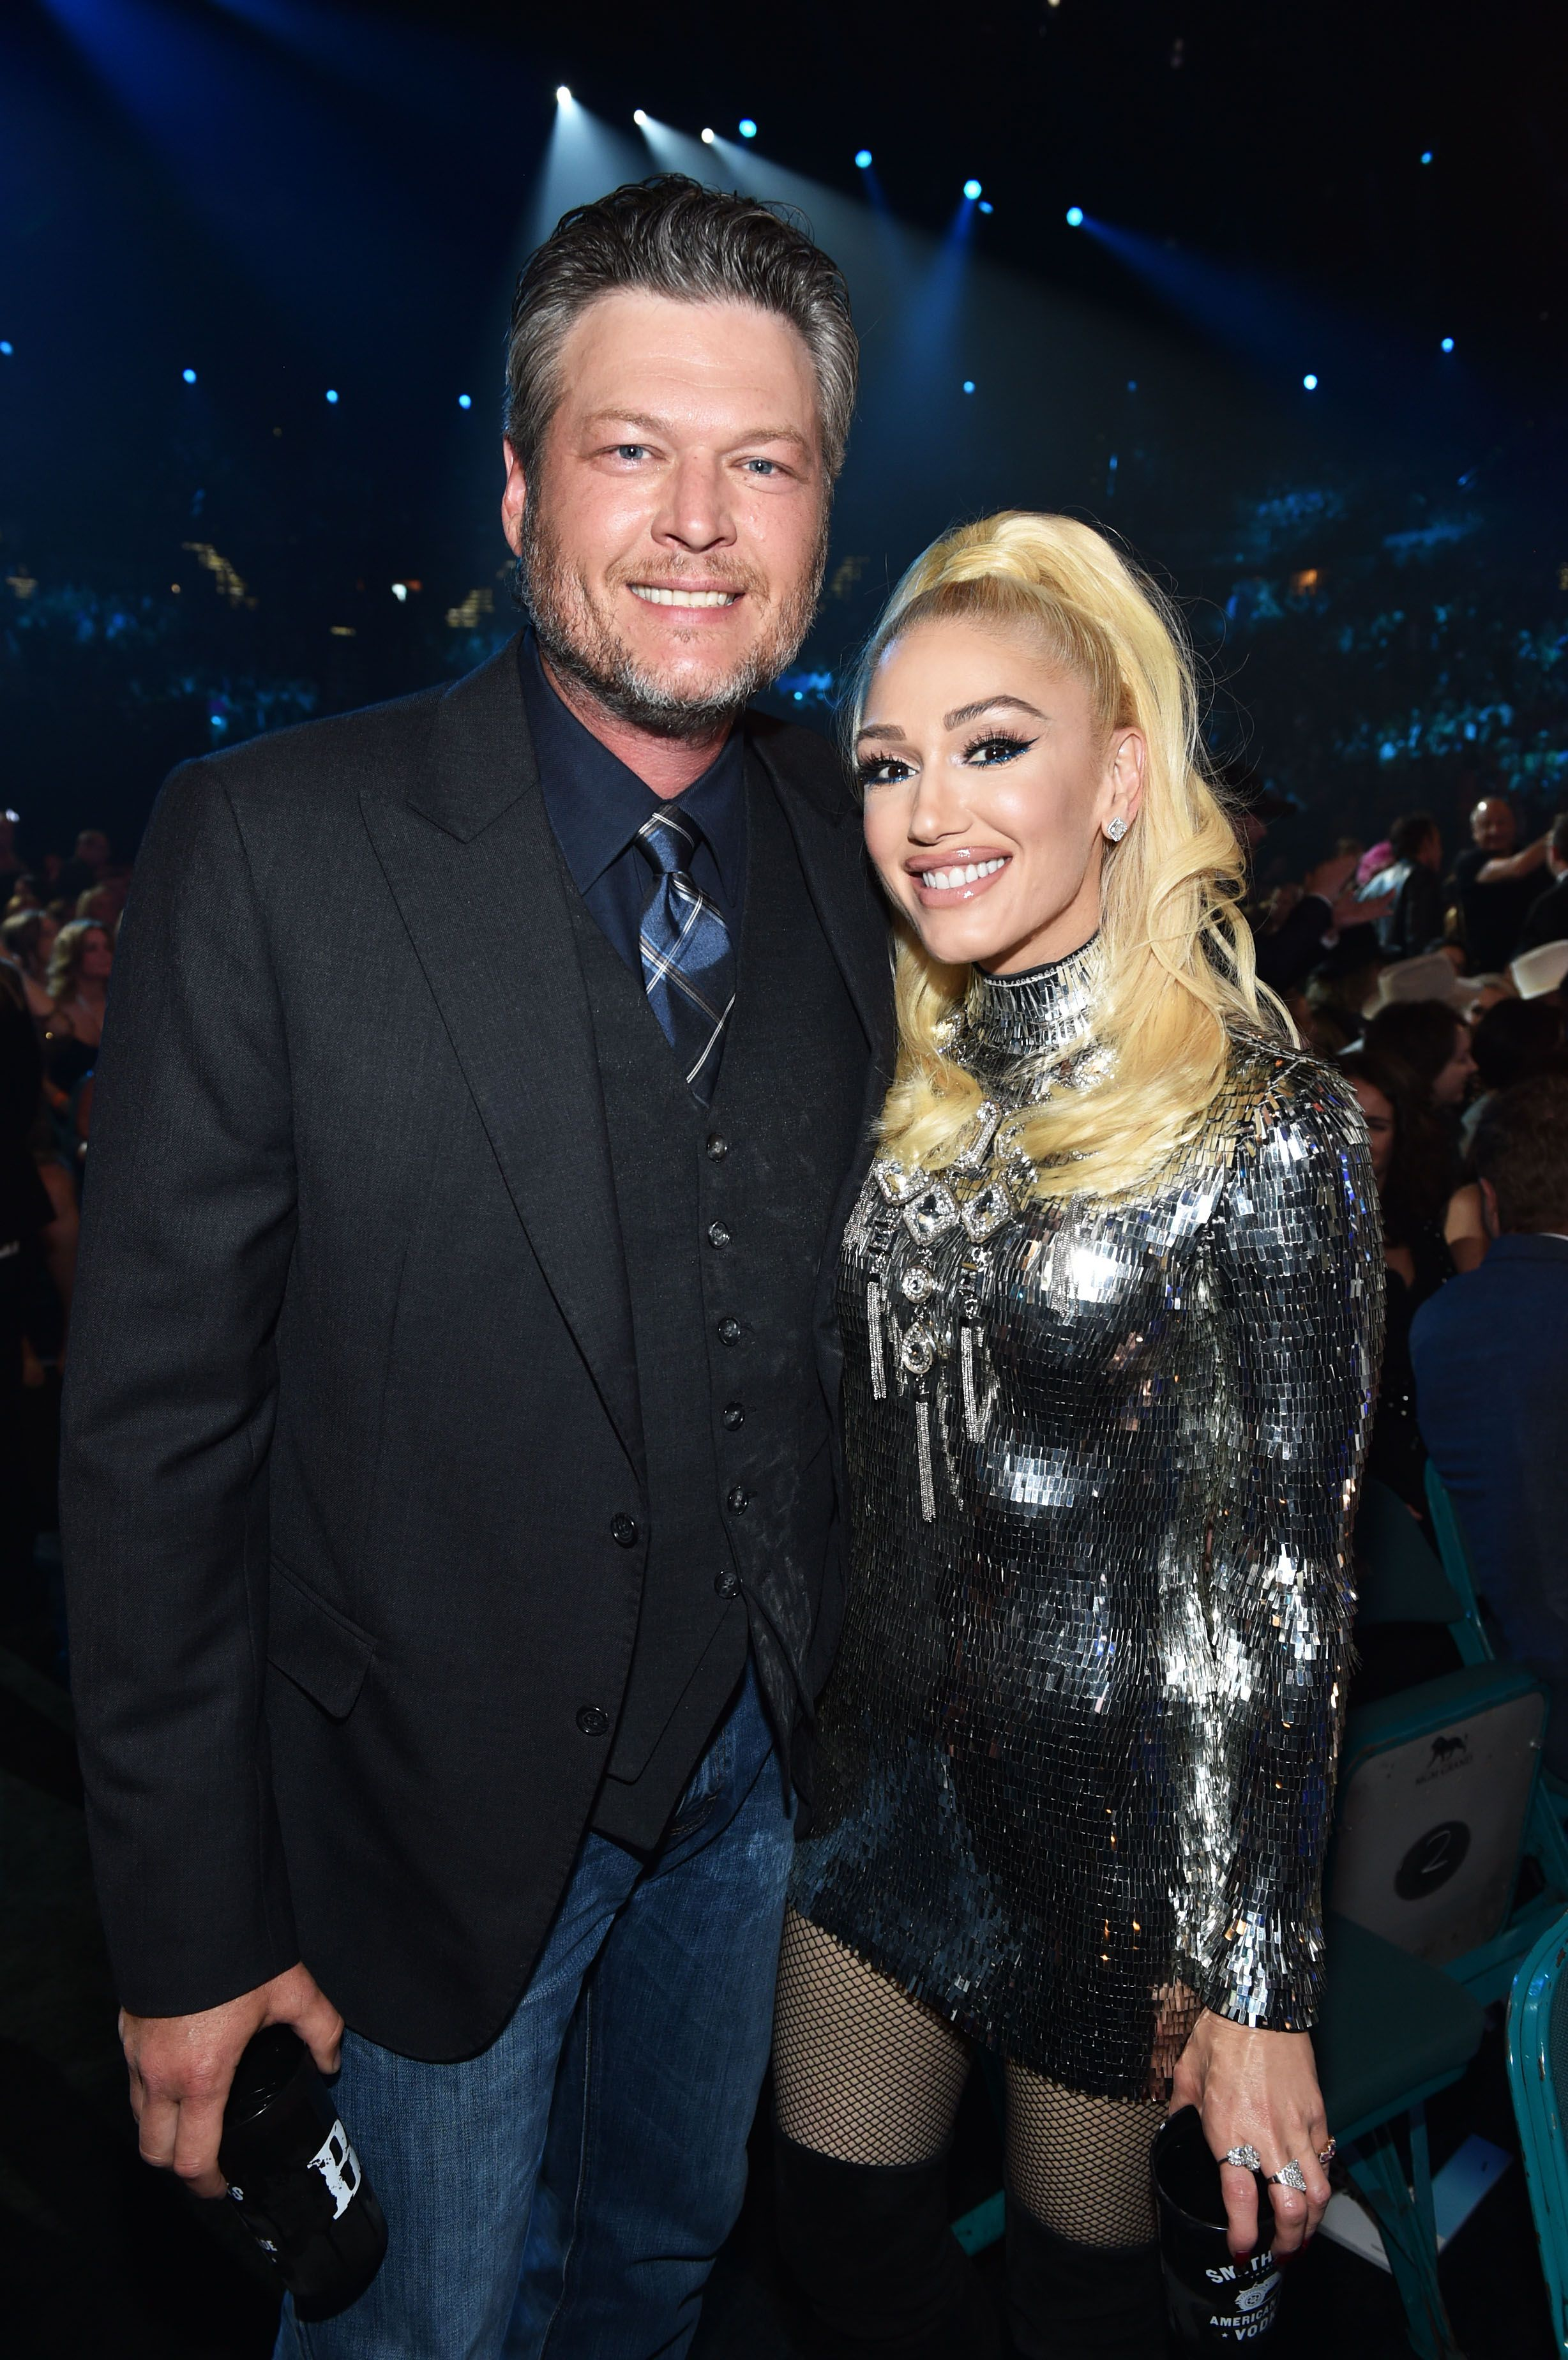 14aee26c84418 Blake Shelton and Gwen Stefani Were the Cutest Couple at the ACM Awards